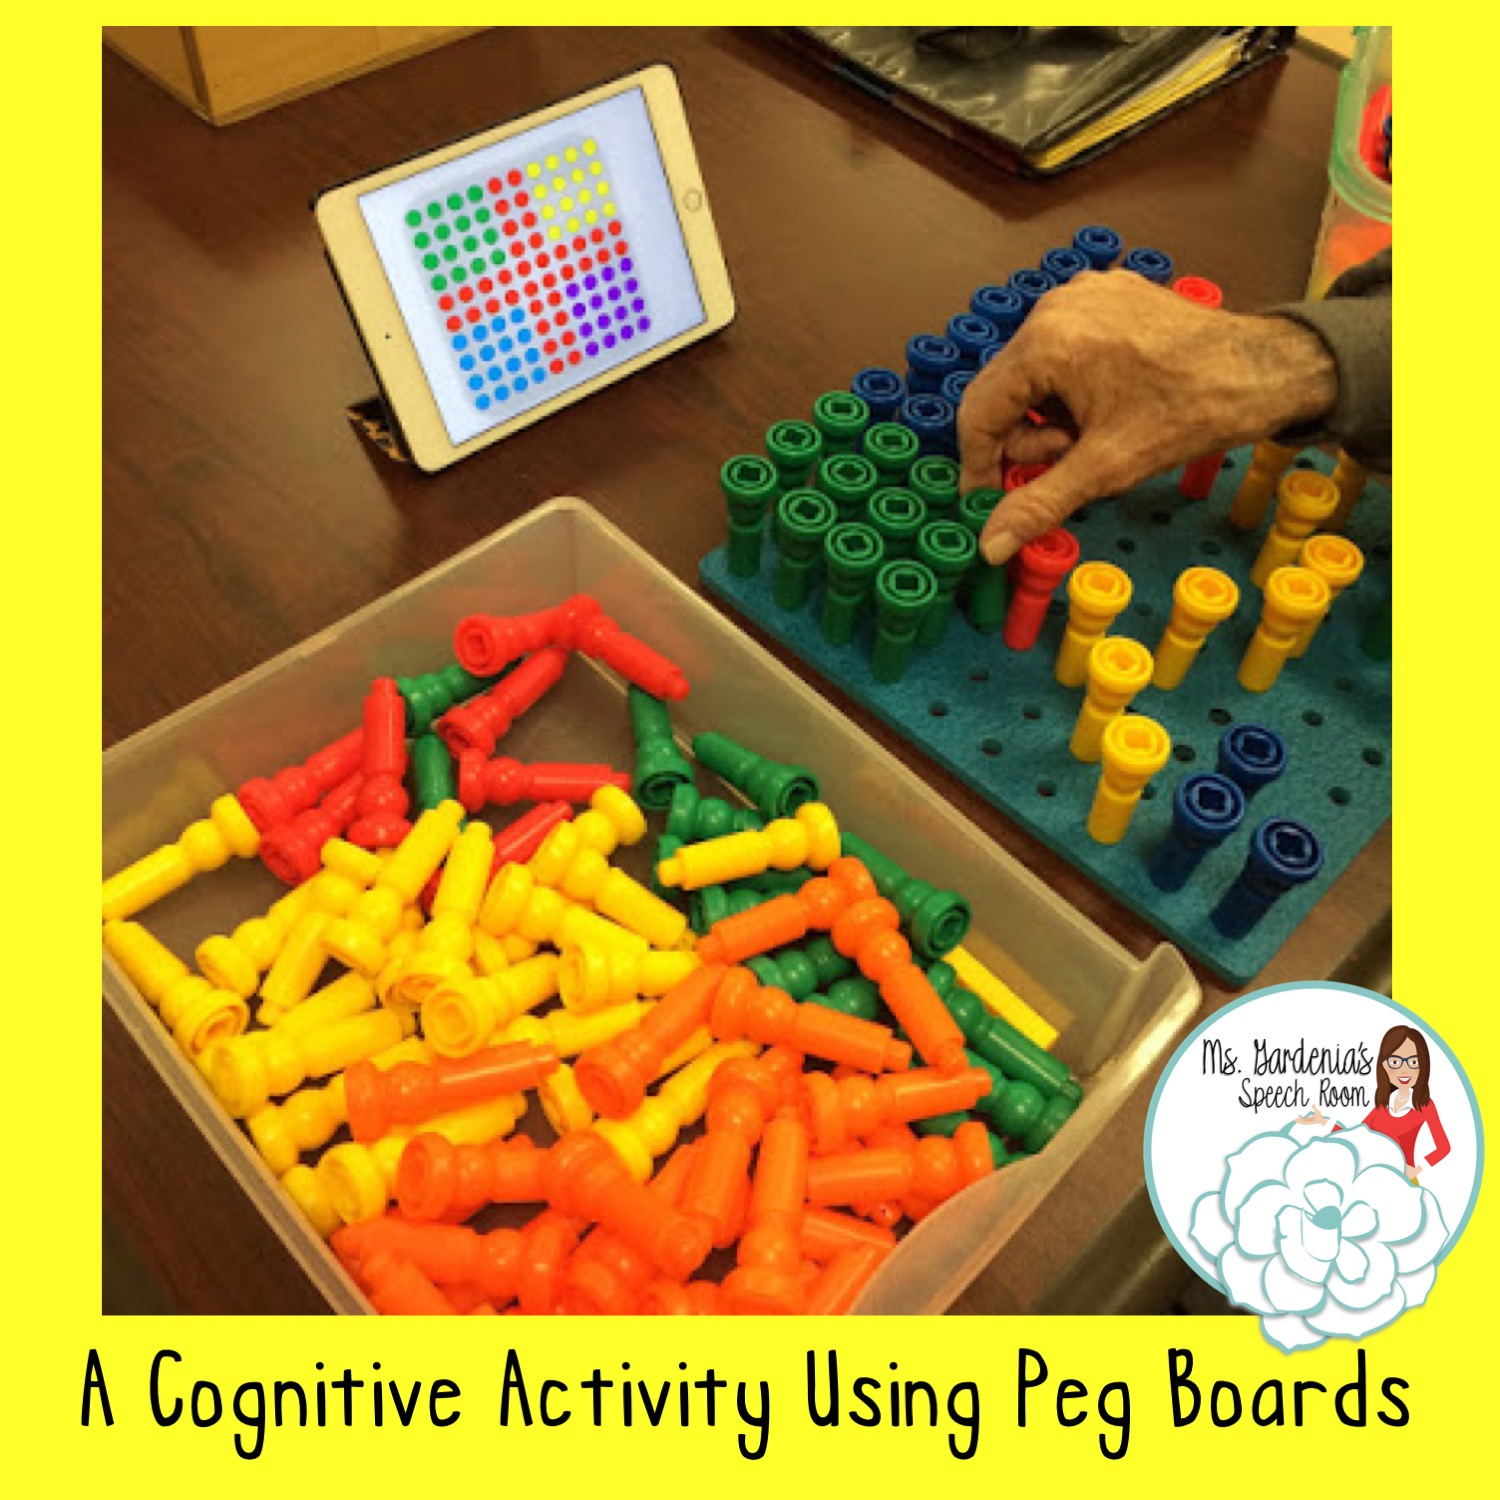 Cognitive Activity Using Peg Board For Speech Therapy In Snf Ms